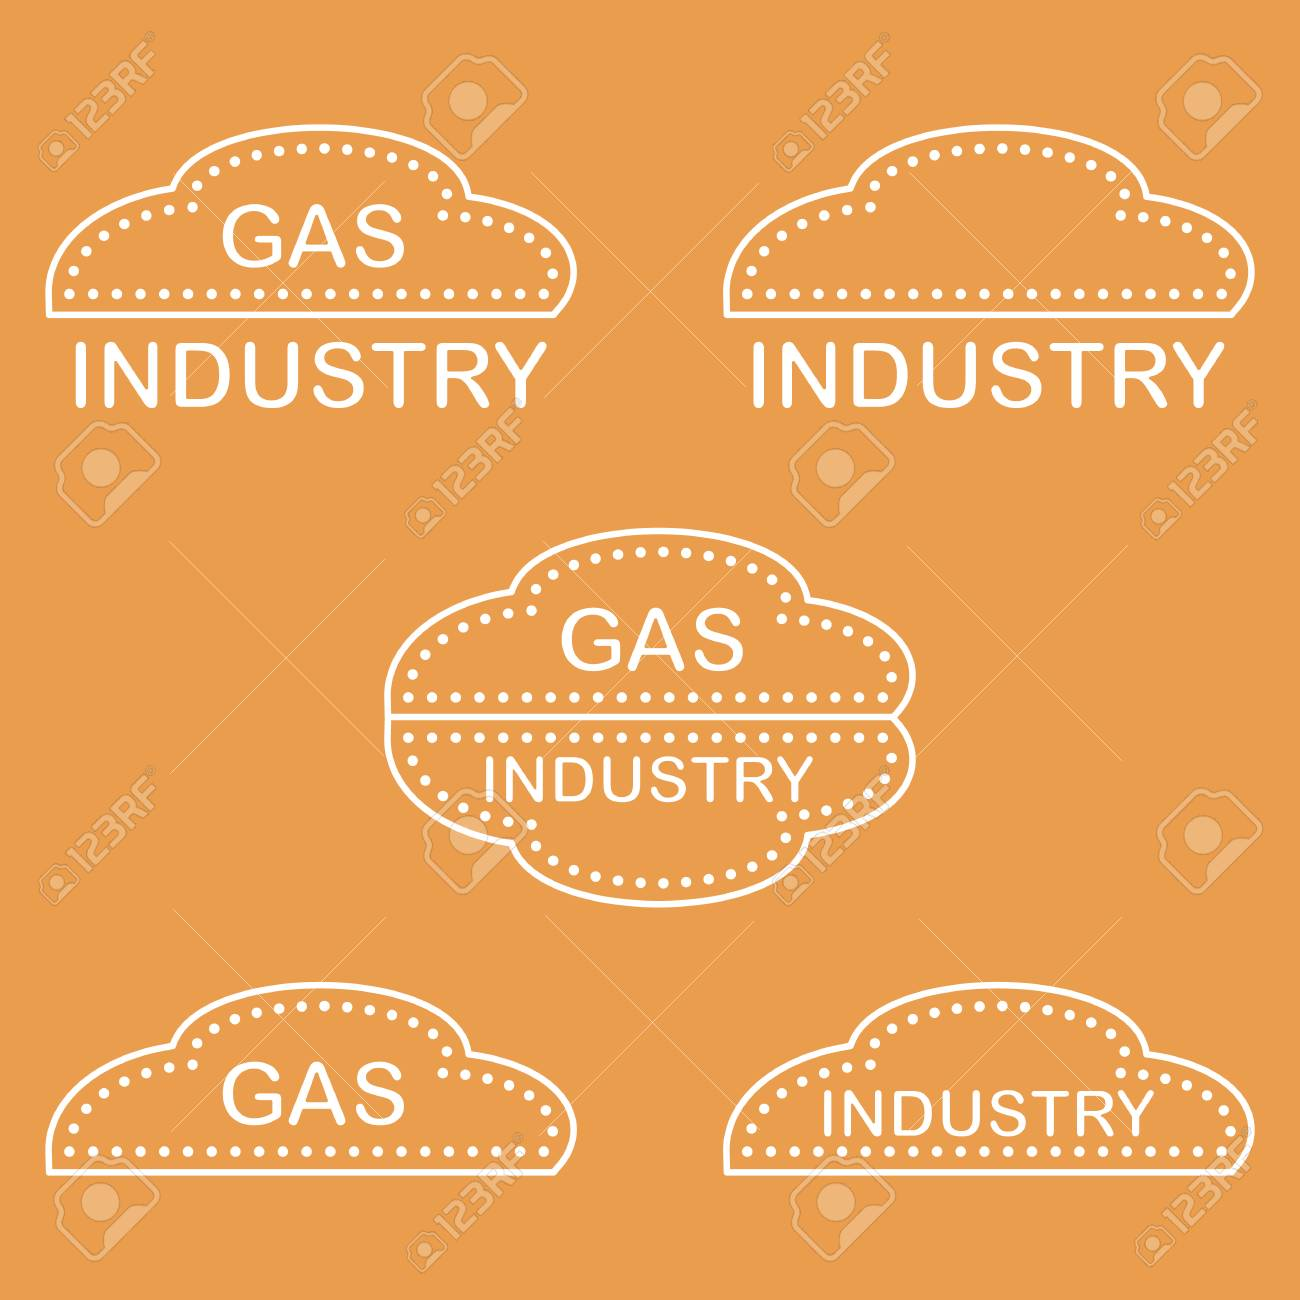 Label stickers logos of the gas industry design for announcement